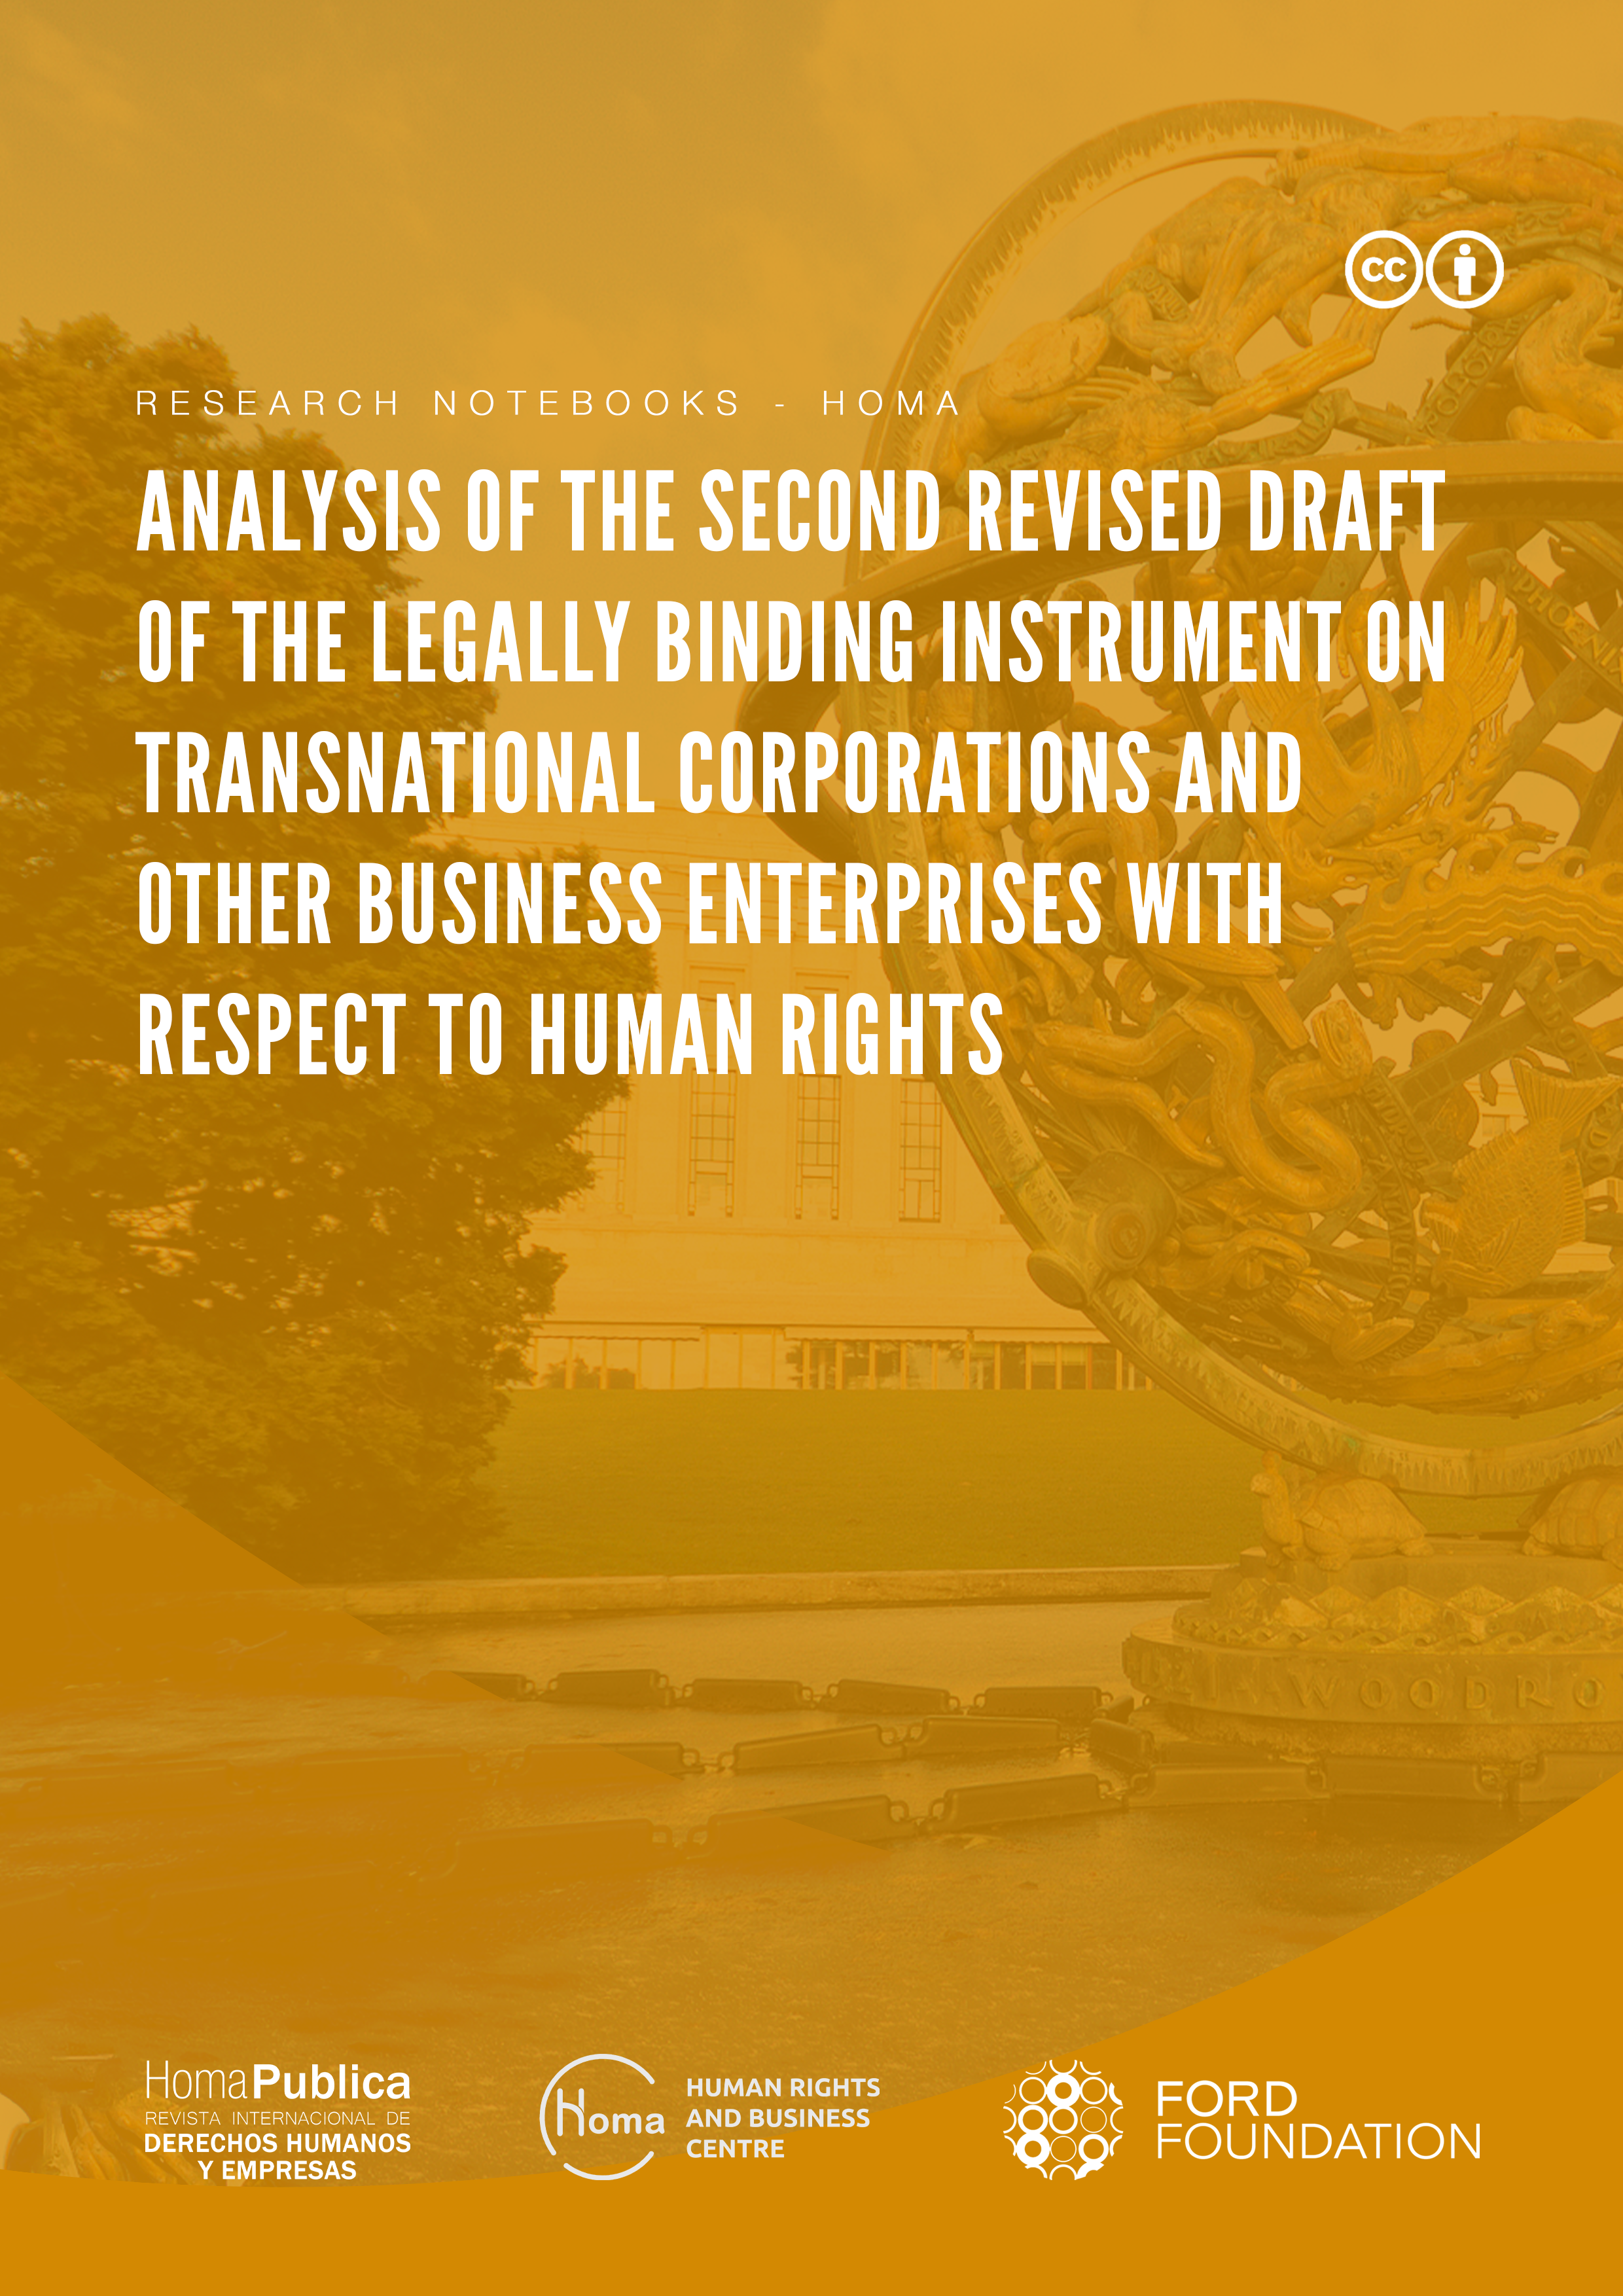 Analysis of the Second Revised Draft of the legally binding instrument on transnational corporations and other business enterprises with respect to human rights